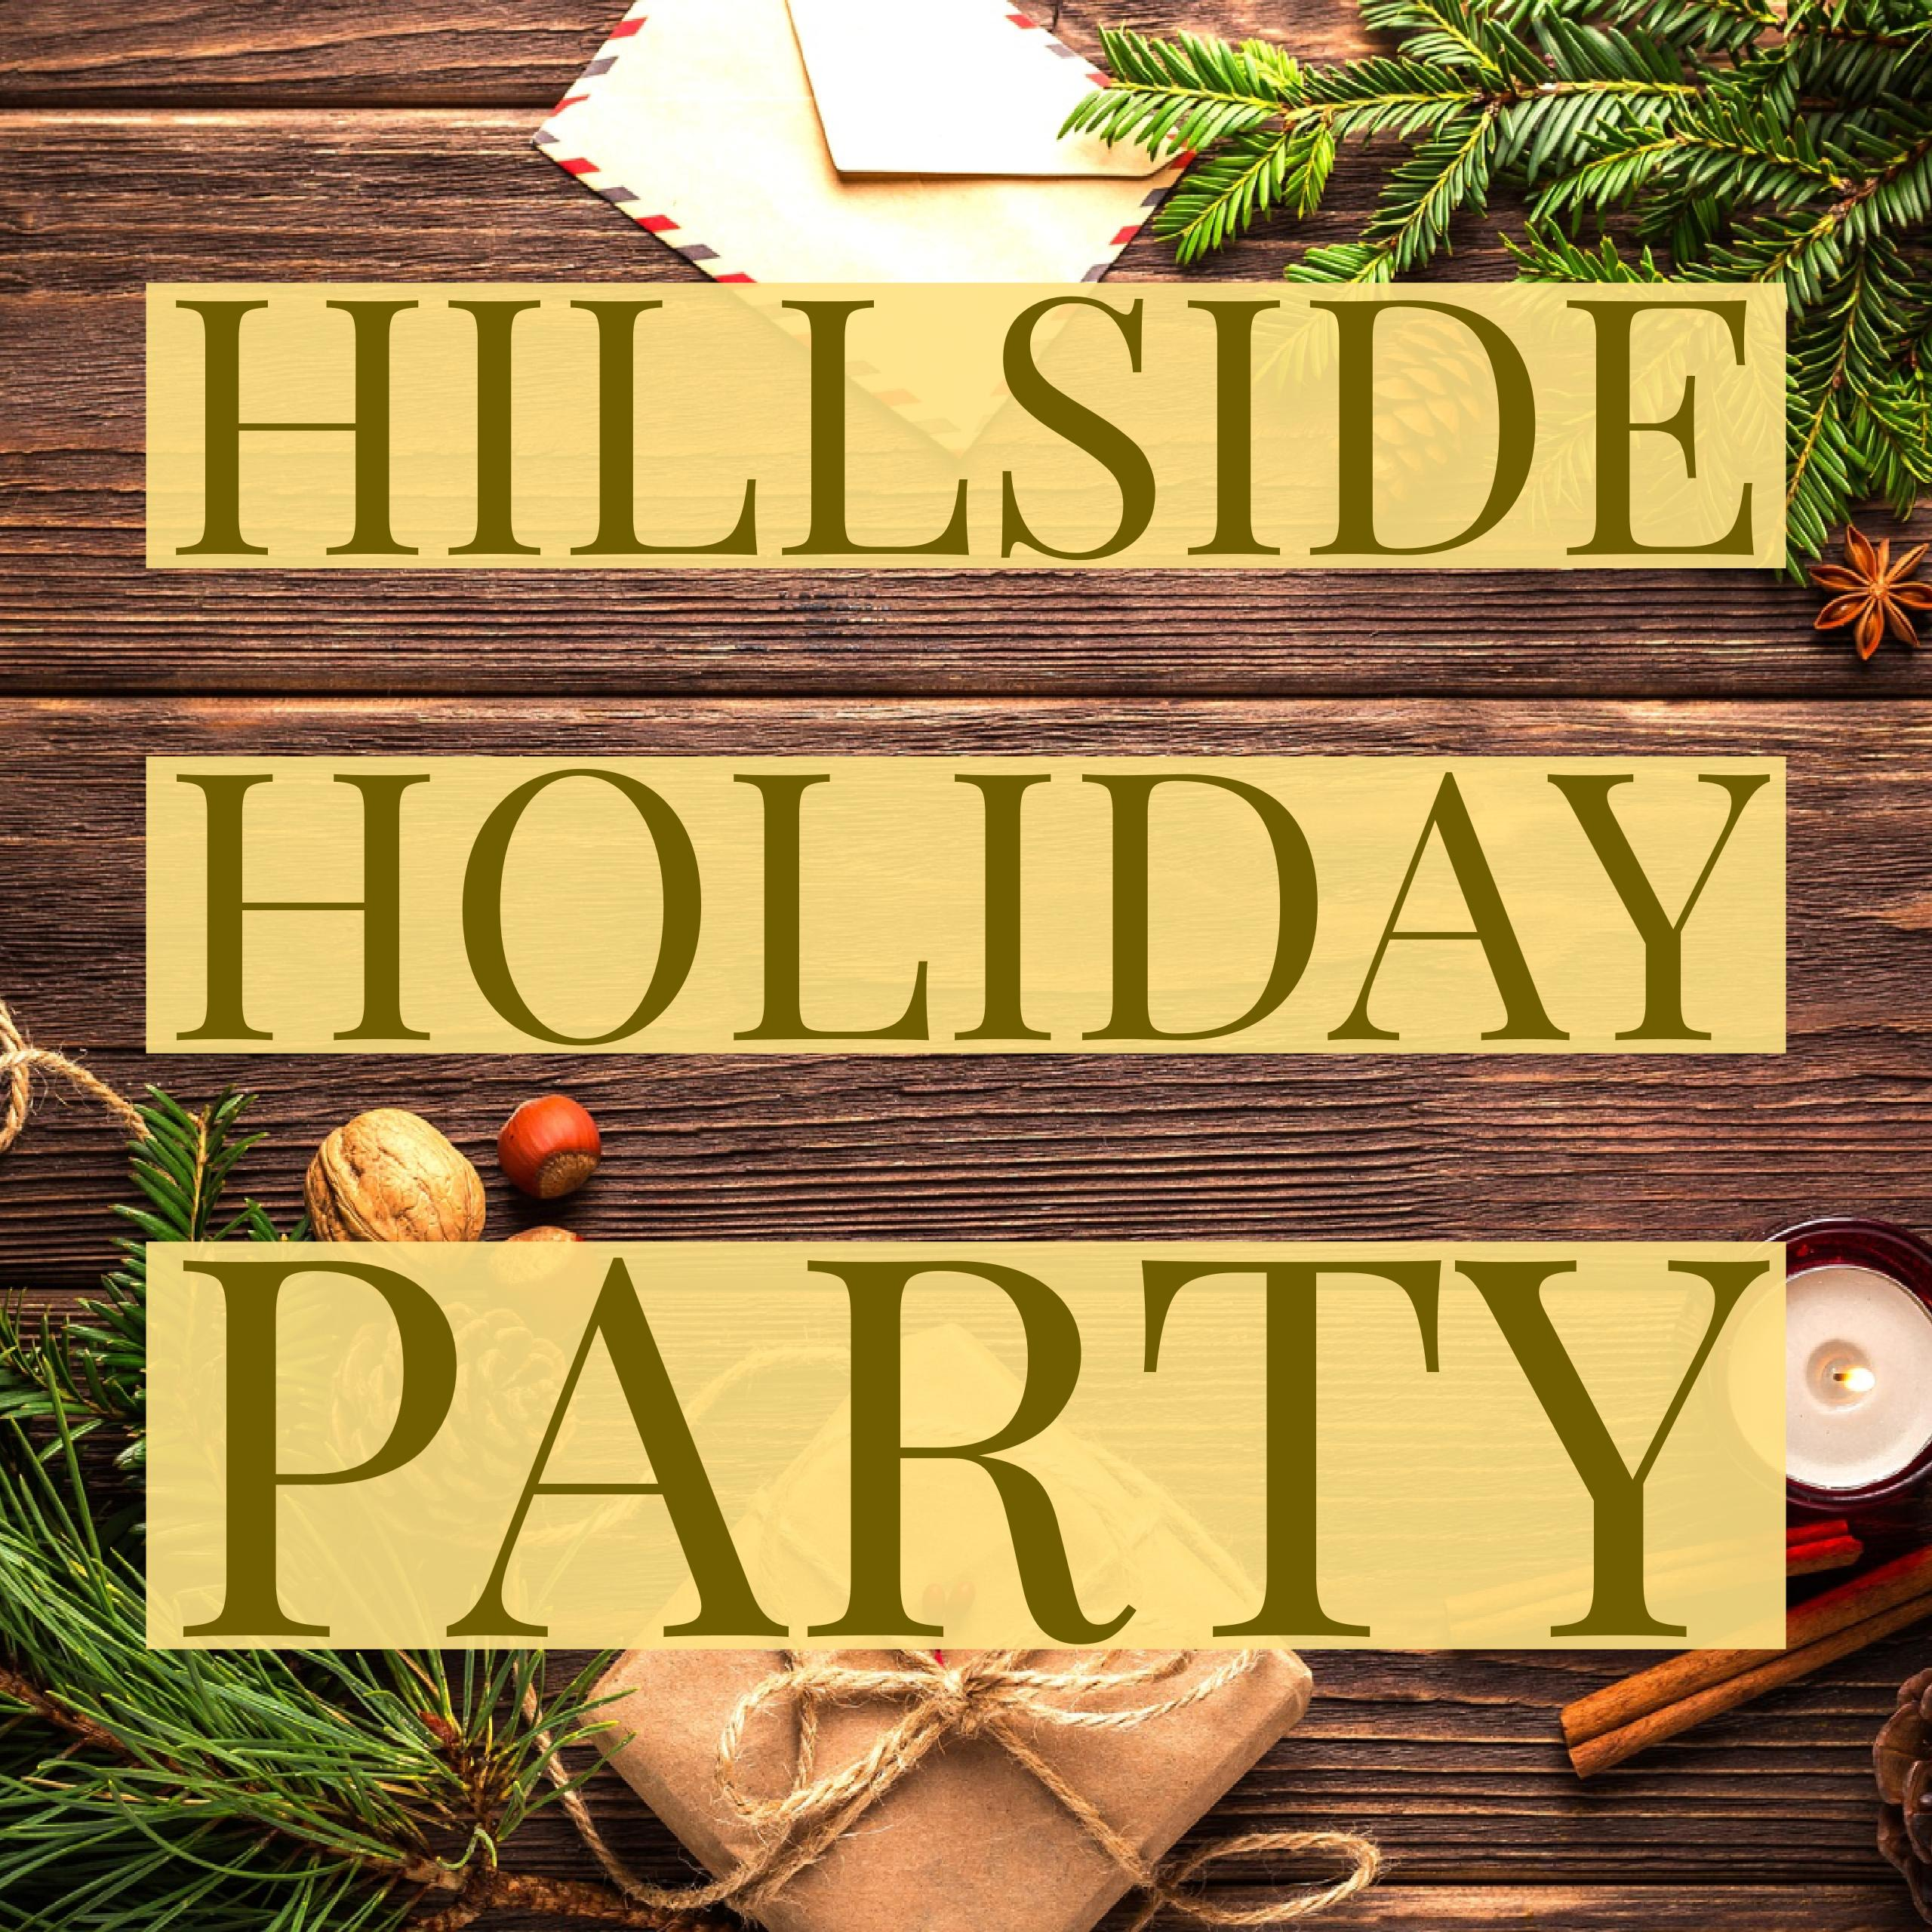 Hillside Holiday Party